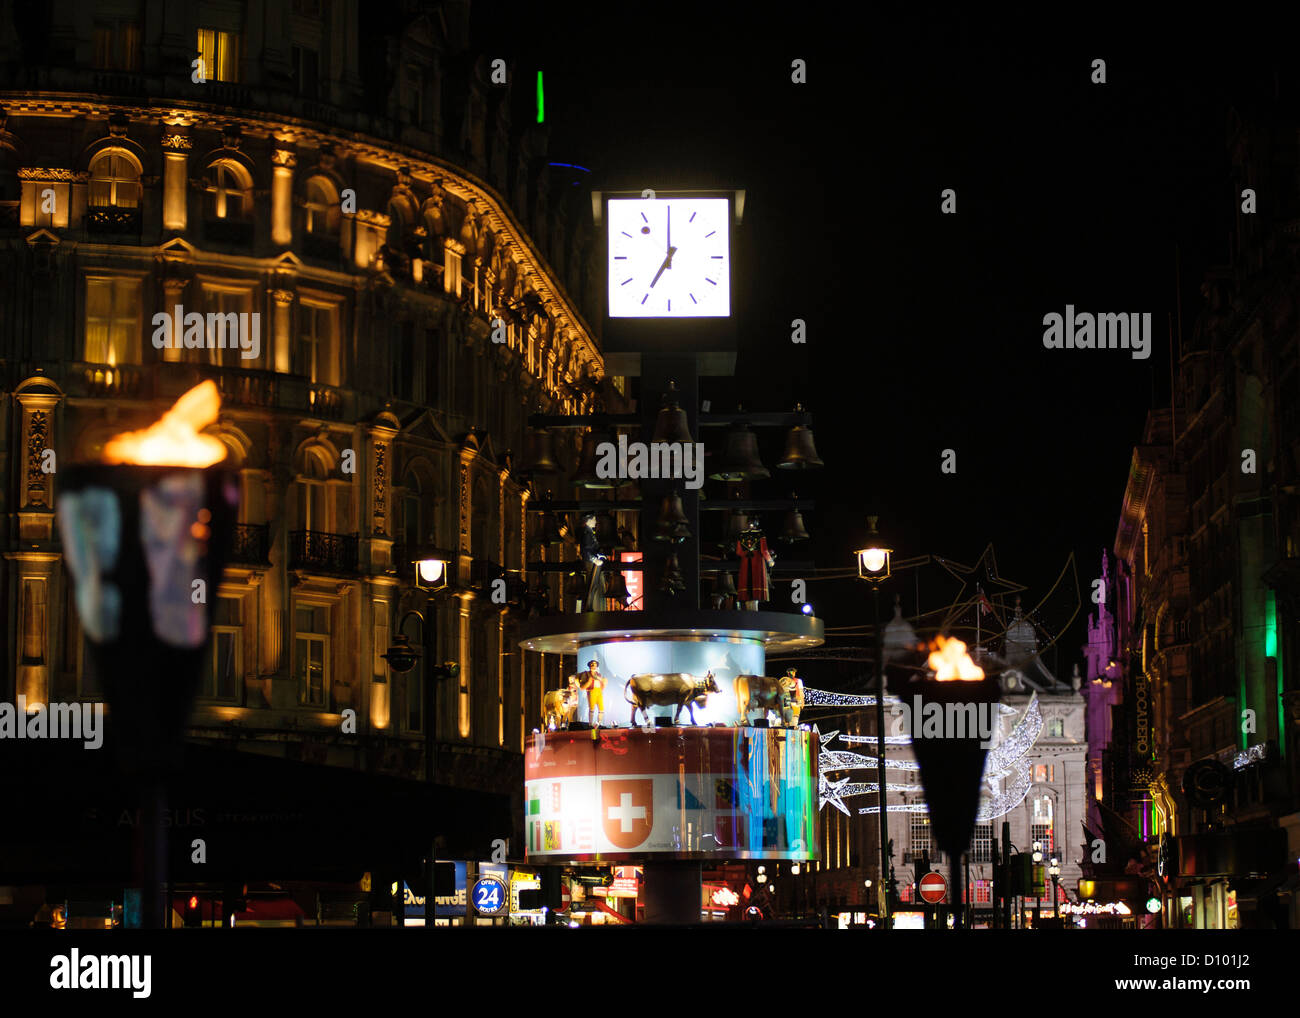 The swiss clock on the night of the  UK Premiere of LIFE OF PI on 03/12/2012 at  Leicester Square, London. - Stock Image